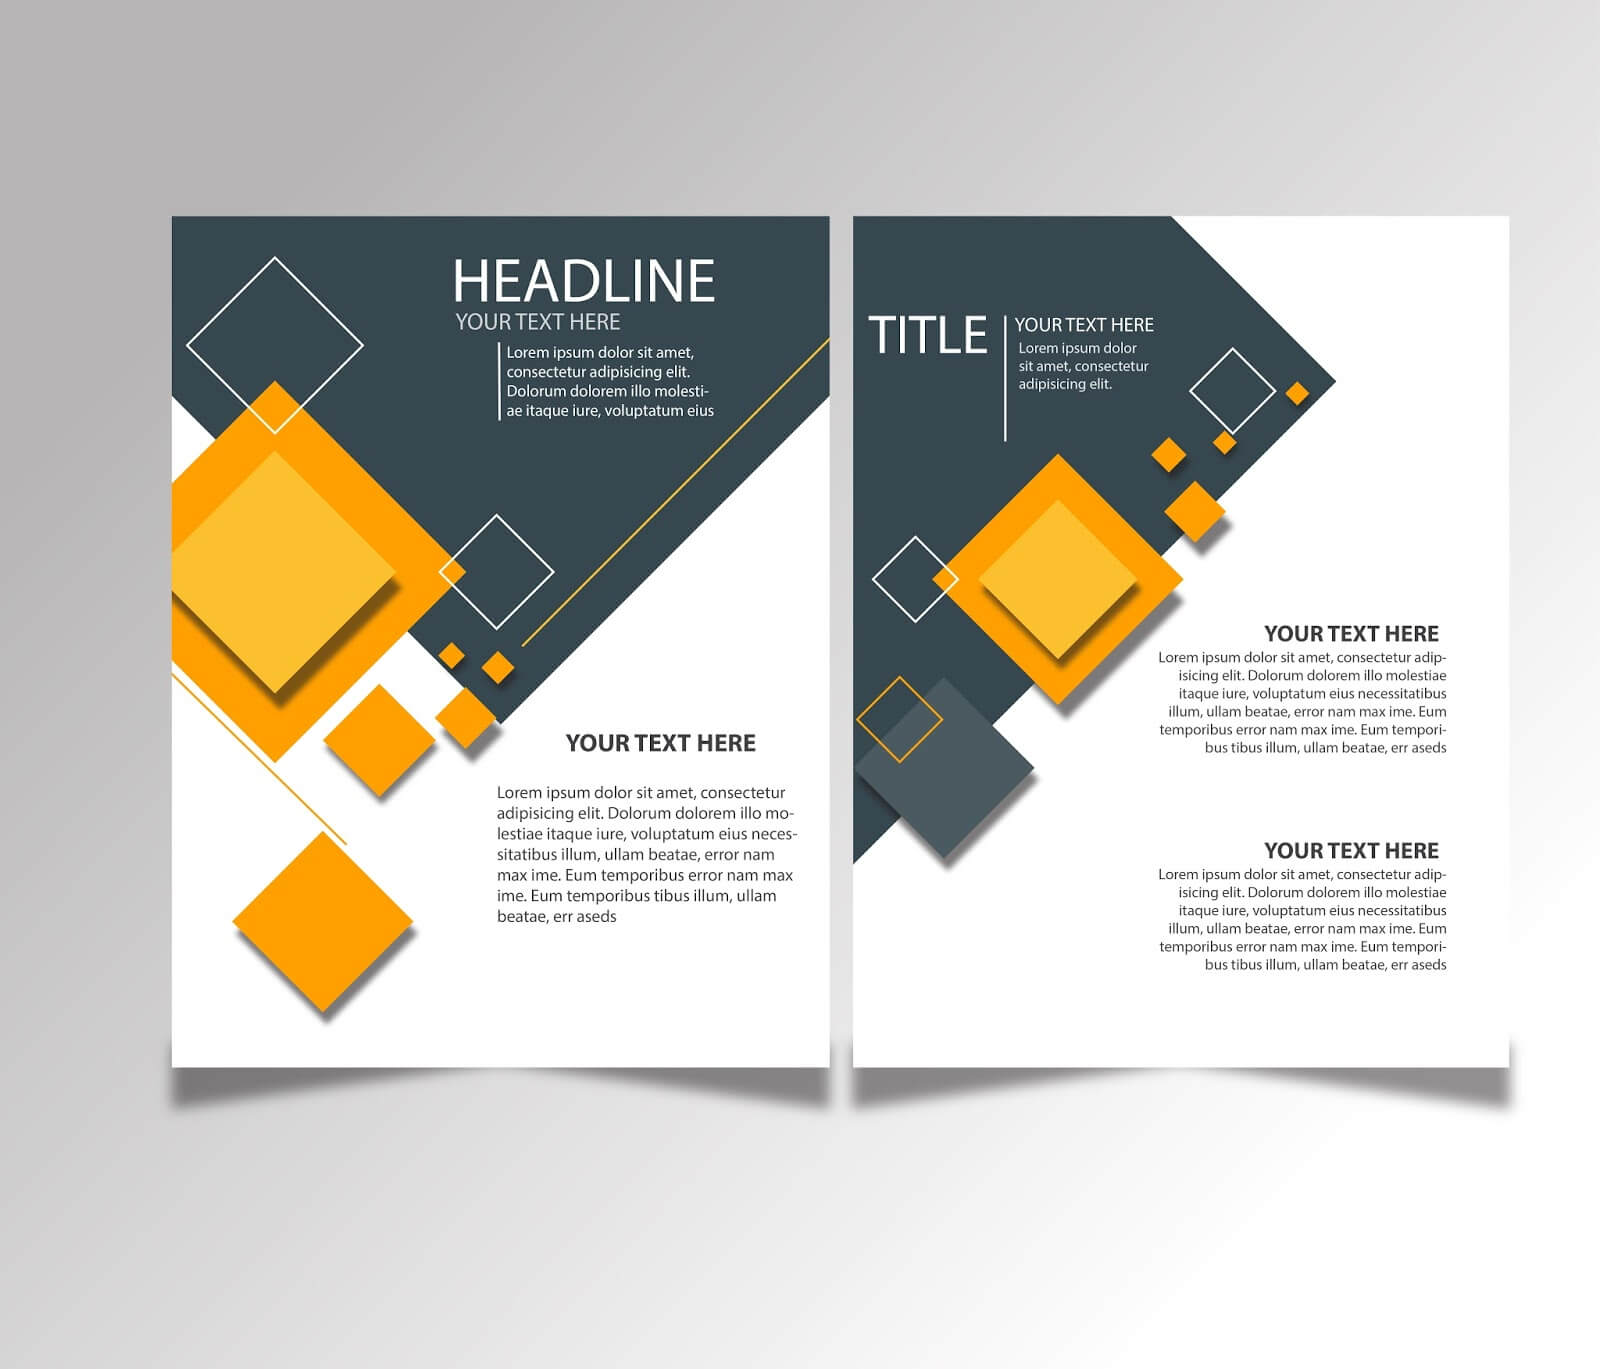 Free Download Brochure Design Templates Ai Files - Ideosprocess With Regard To Brochure Templates Ai Free Download